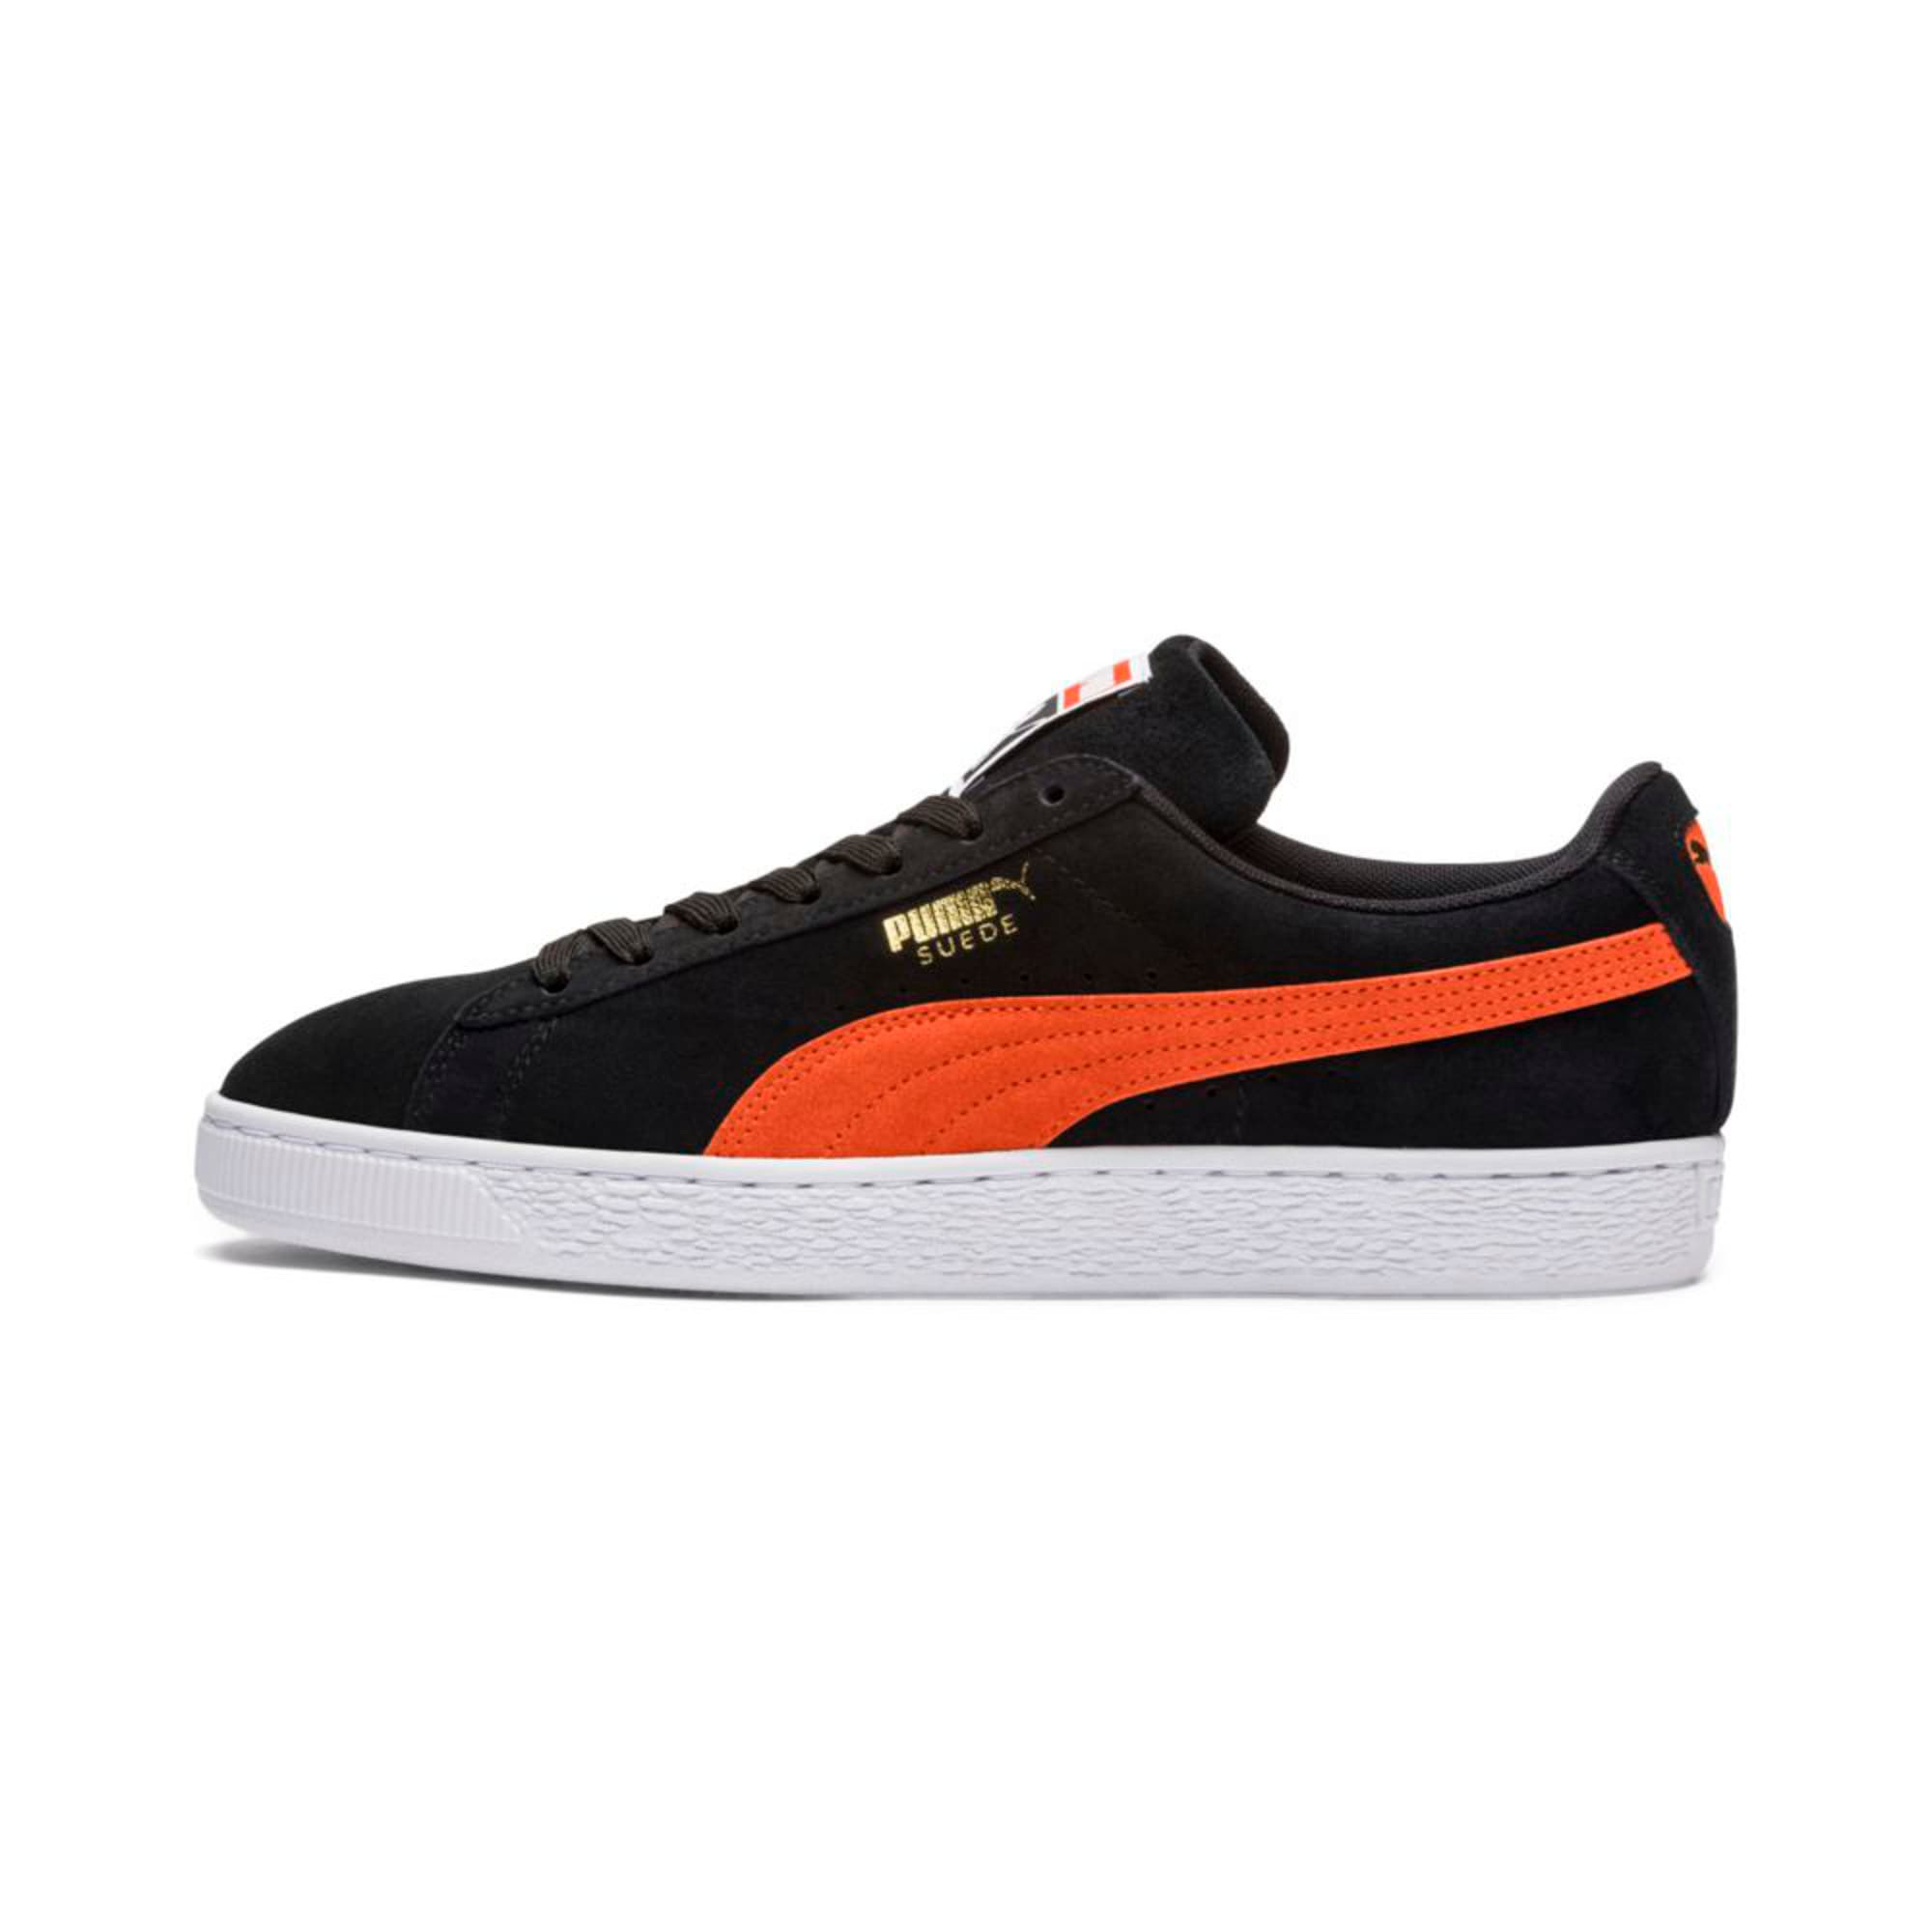 Thumbnail 1 of Suede Classic Trainers, Black-Firecracker- White, medium-IND